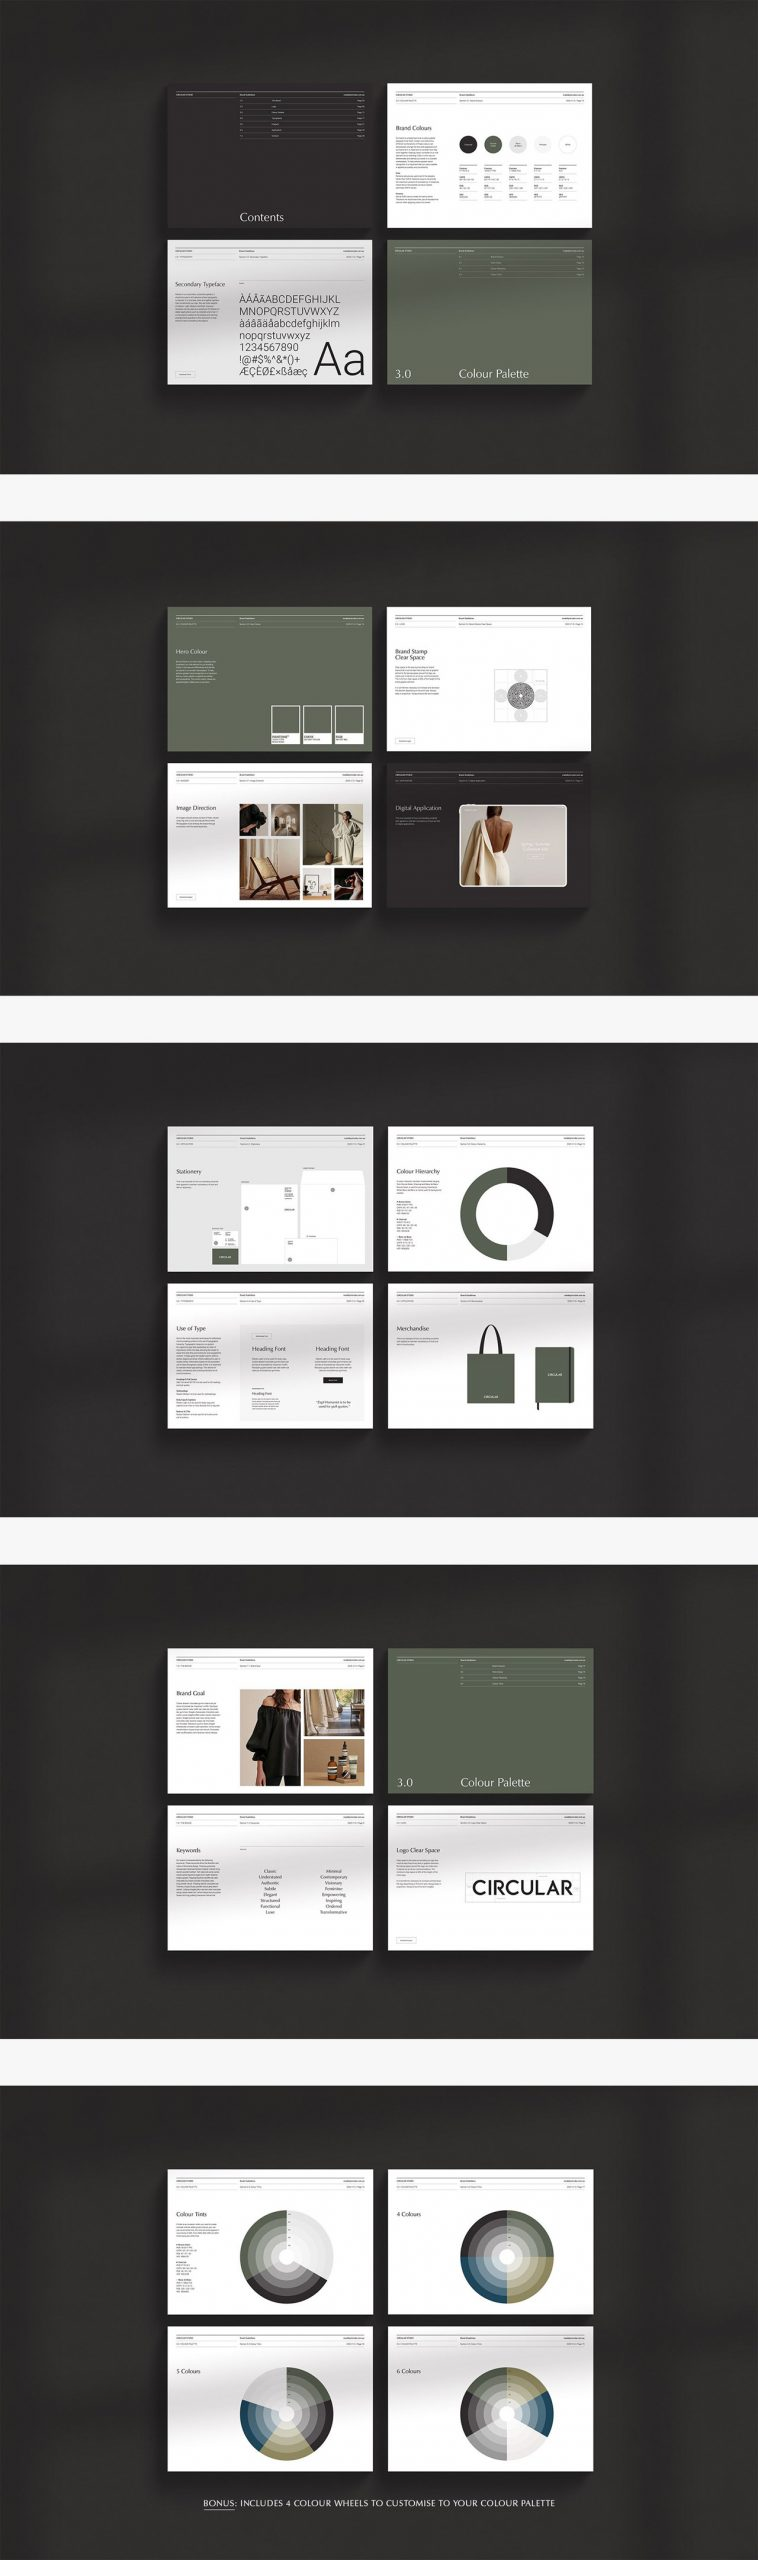 ODESSA brand guidelines by graphic design studio Circular.